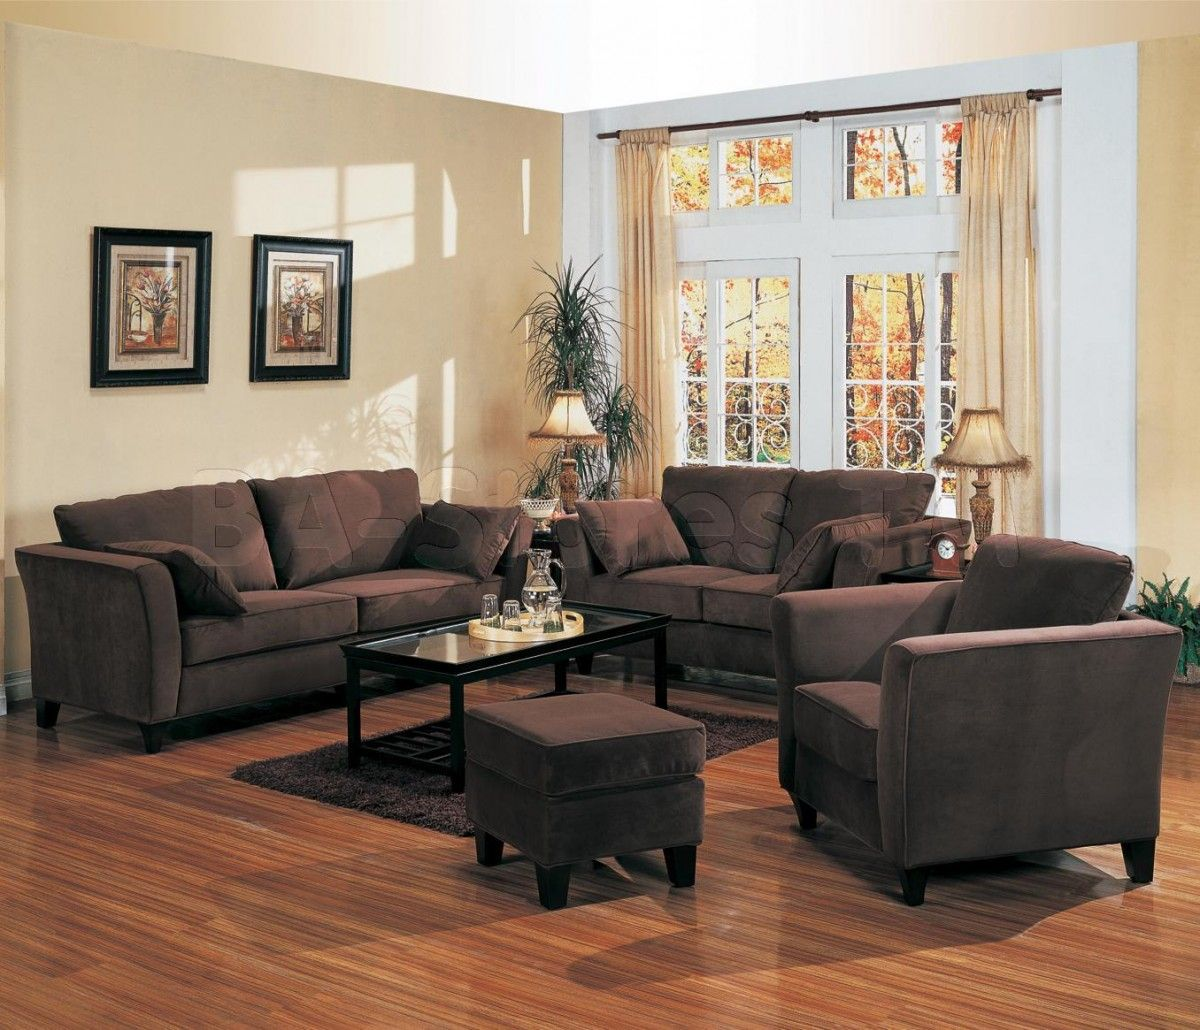 Wall Color To Go With Dark Brown Furniture